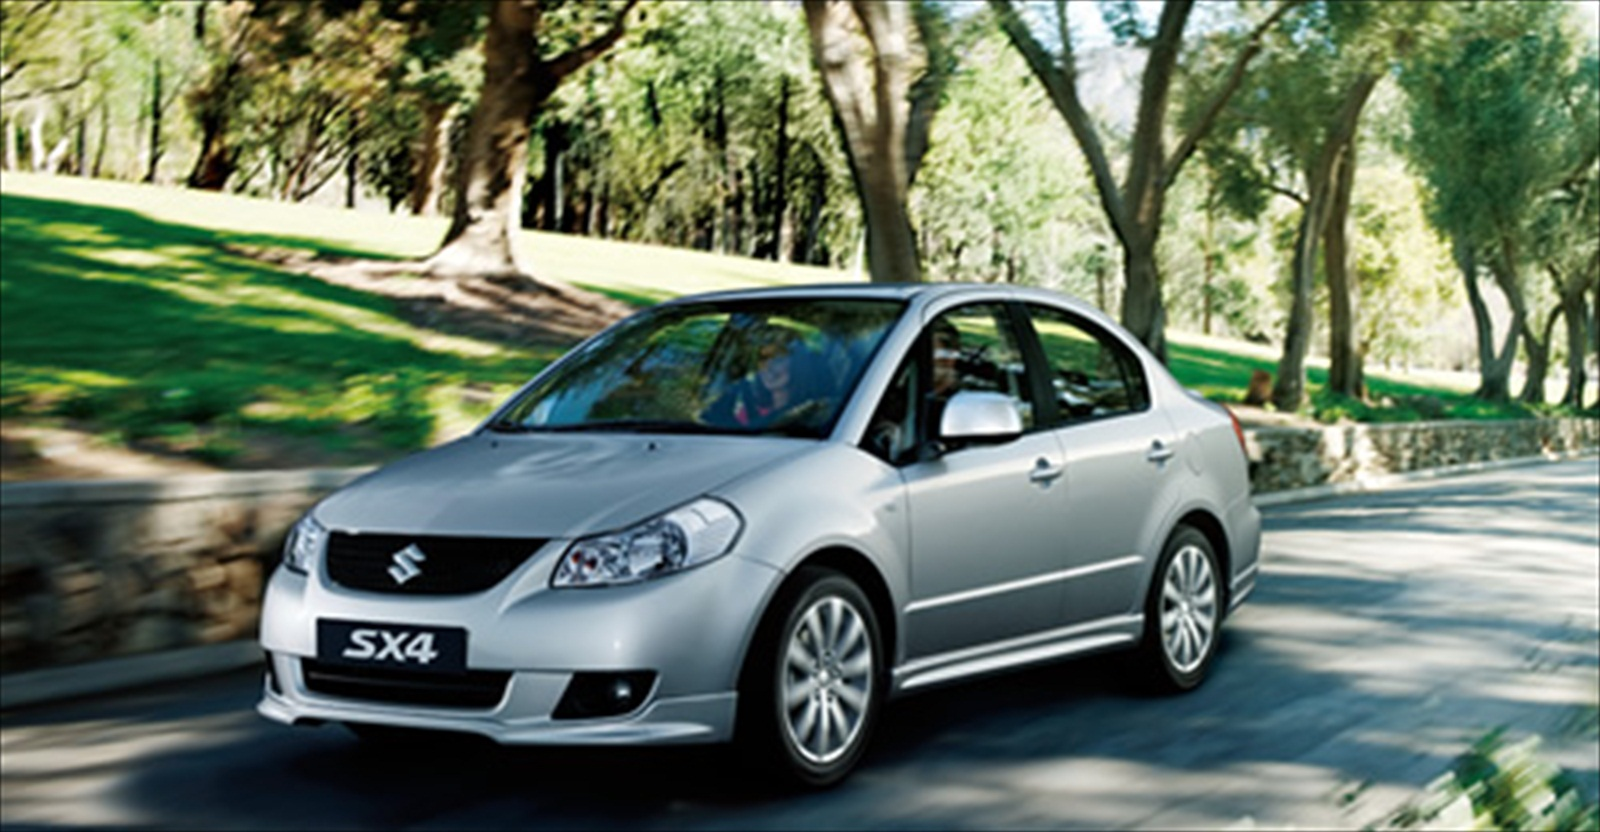 2013 suzuki sx4 sedan pictures information and specs. Black Bedroom Furniture Sets. Home Design Ideas